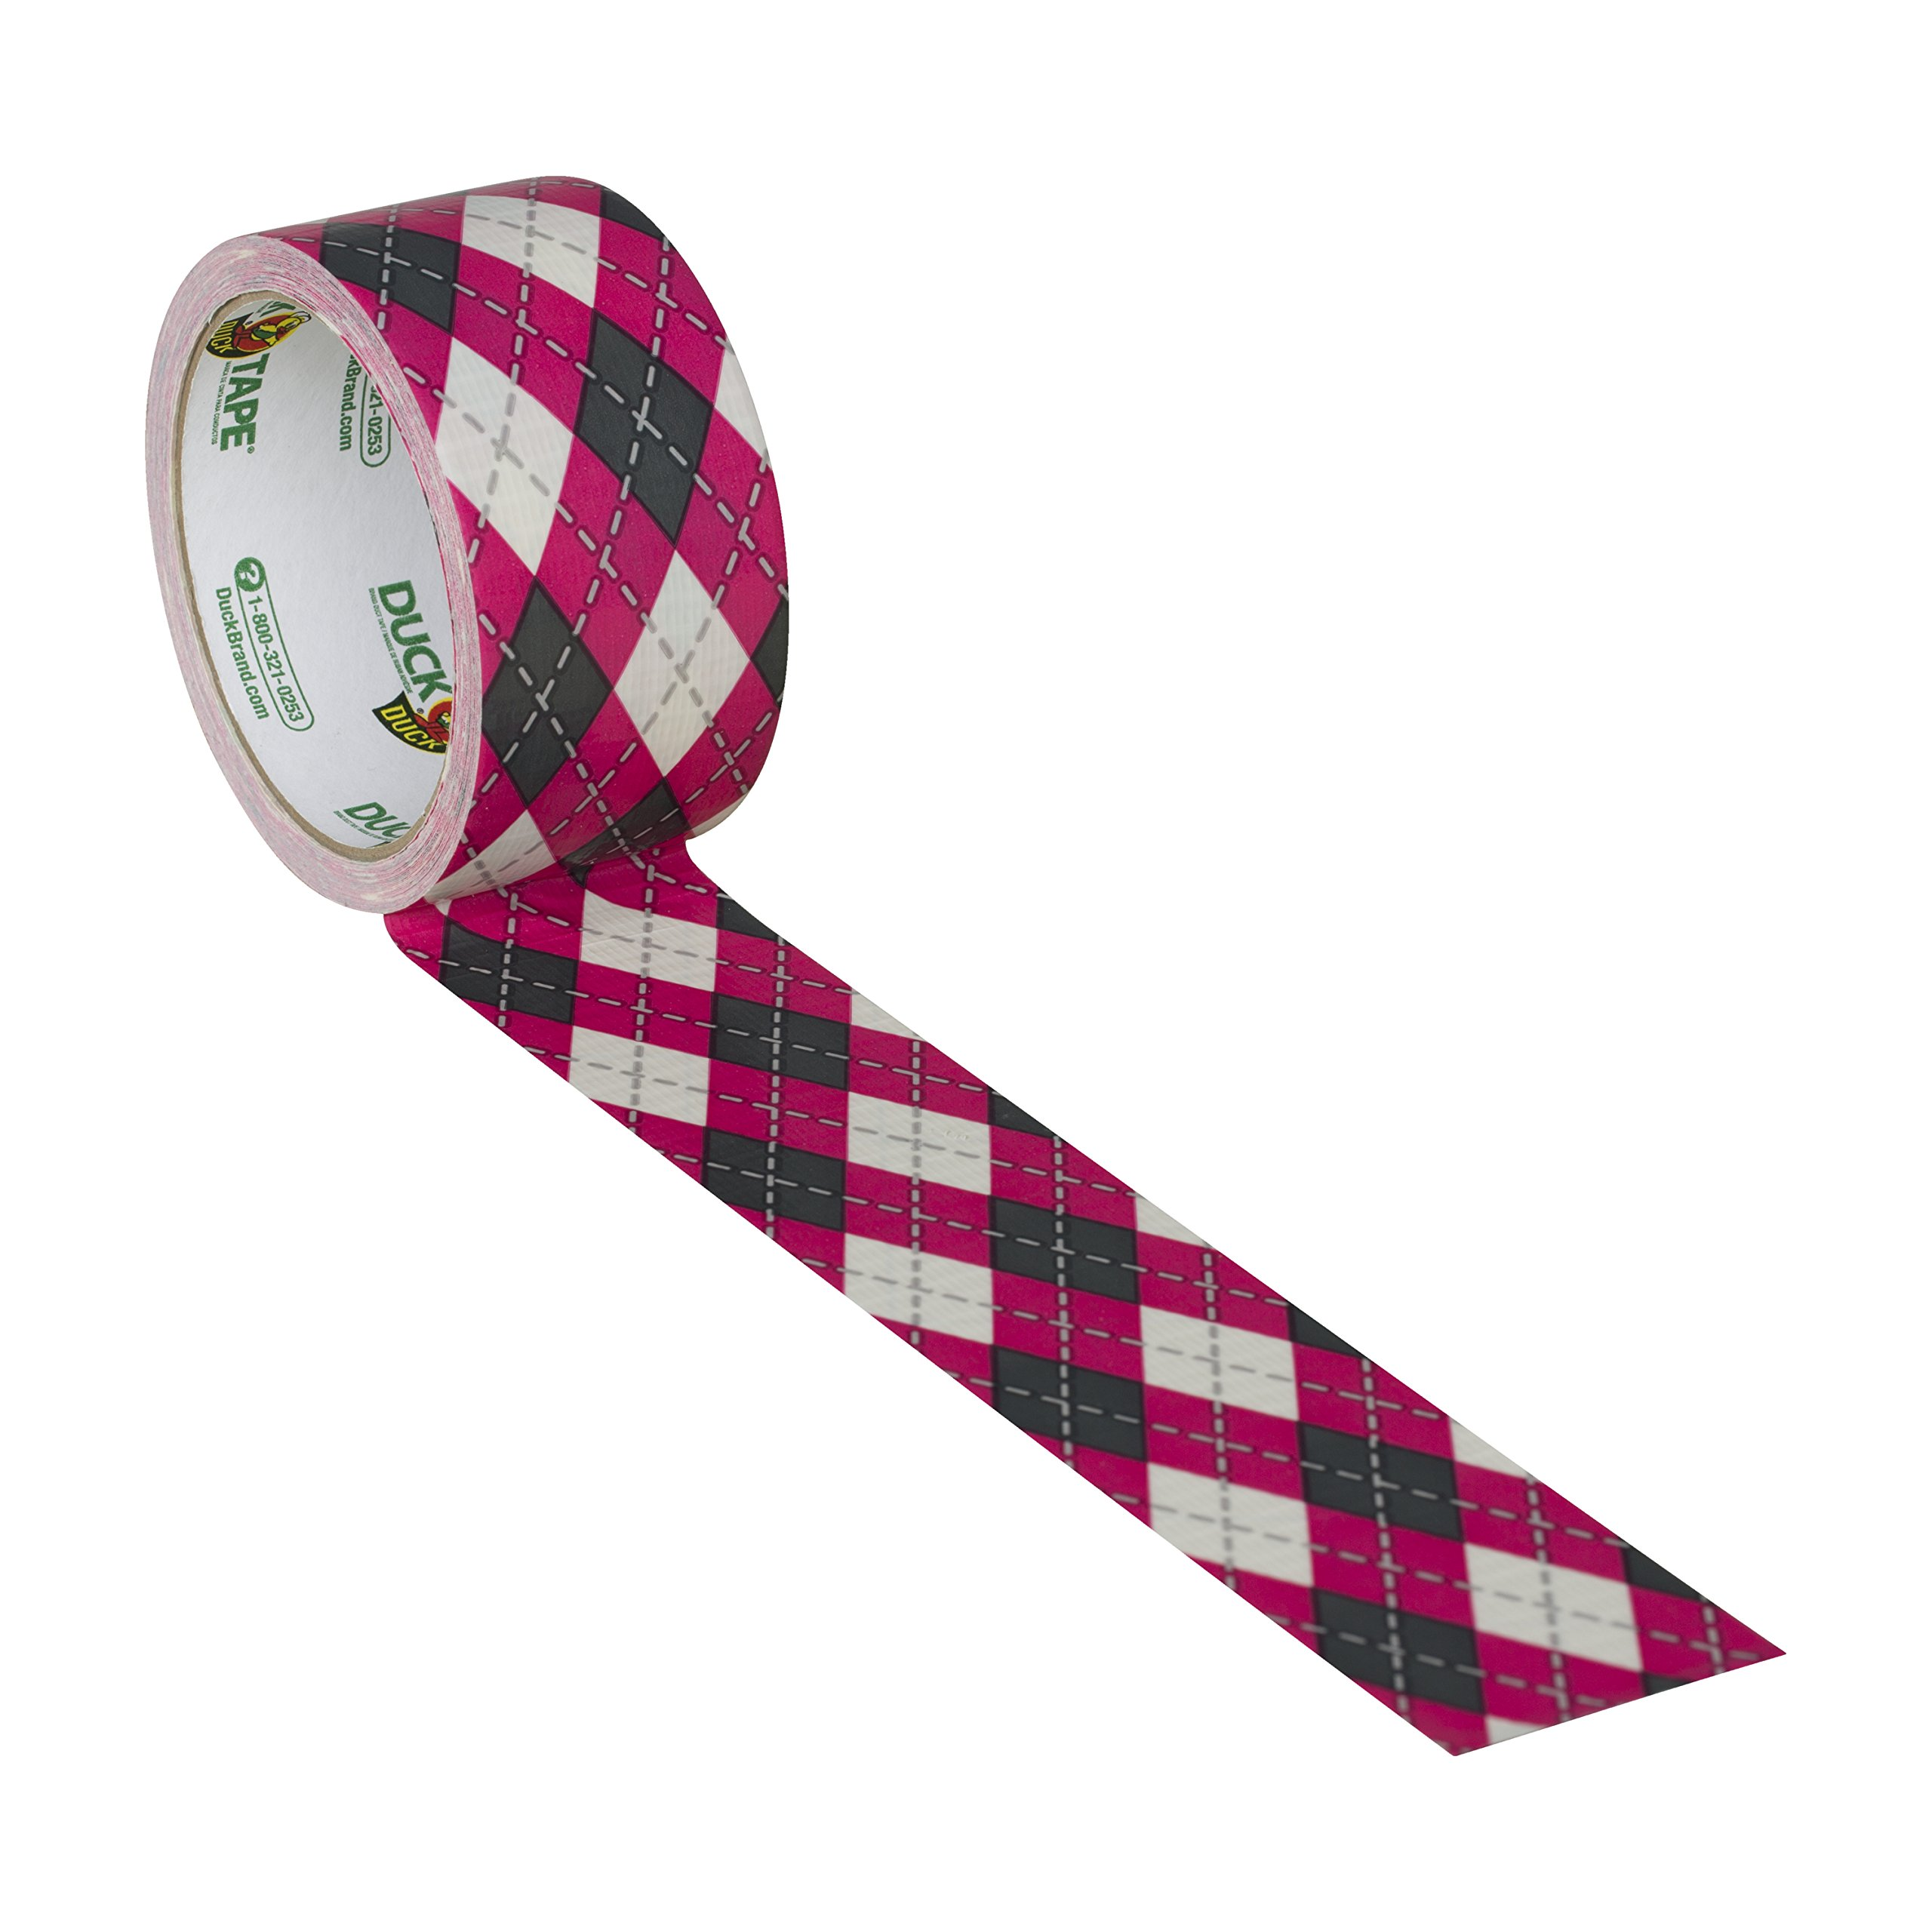 Duck Brand 280977 Printed Duct Tape, Pink Argyle, 1.88 Inches x 10 Yards, Single Roll by Duck (Image #4)